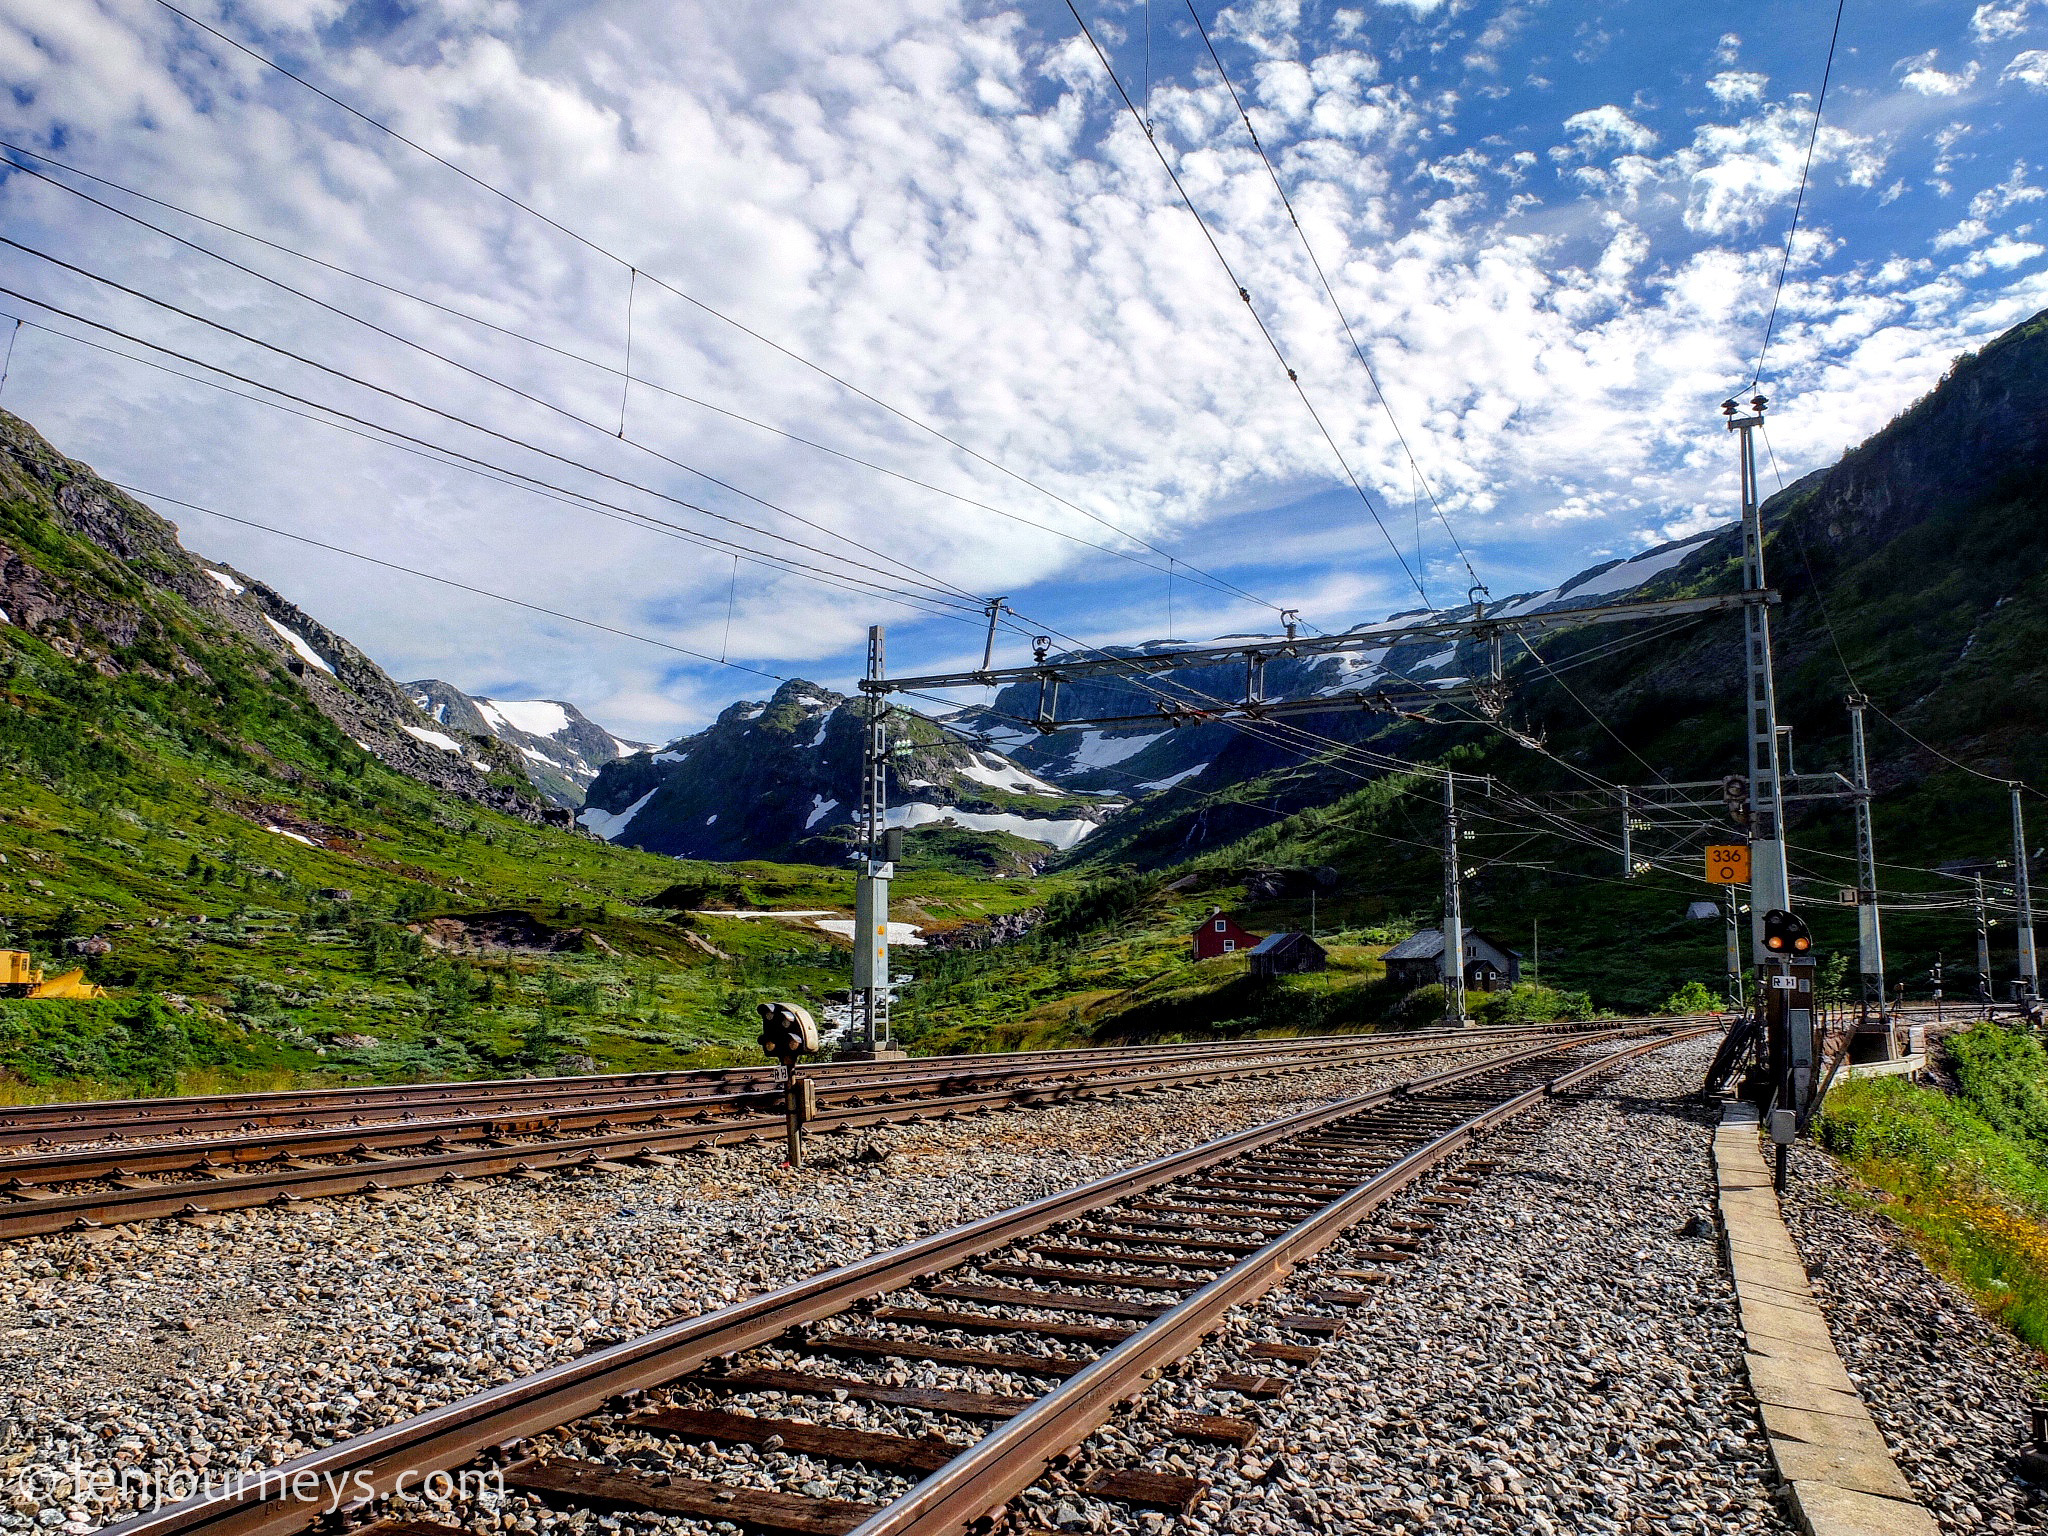 Myrdal - A major station on the Oslo-Bergen route